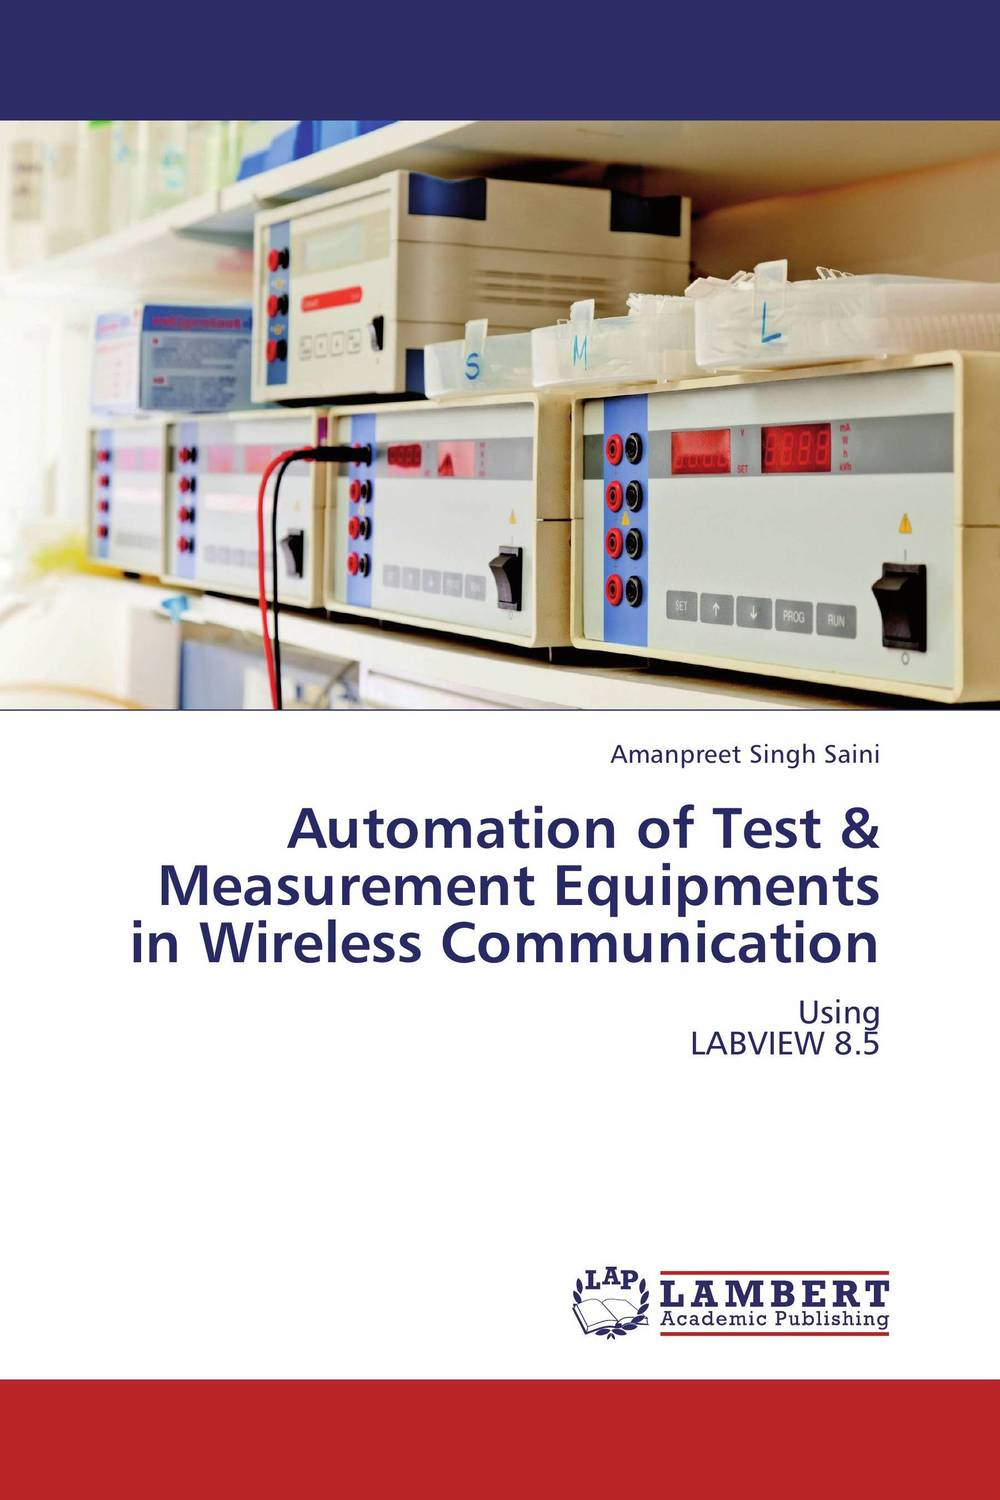 Фото Automation of Test & Measurement Equipments in Wireless Communication